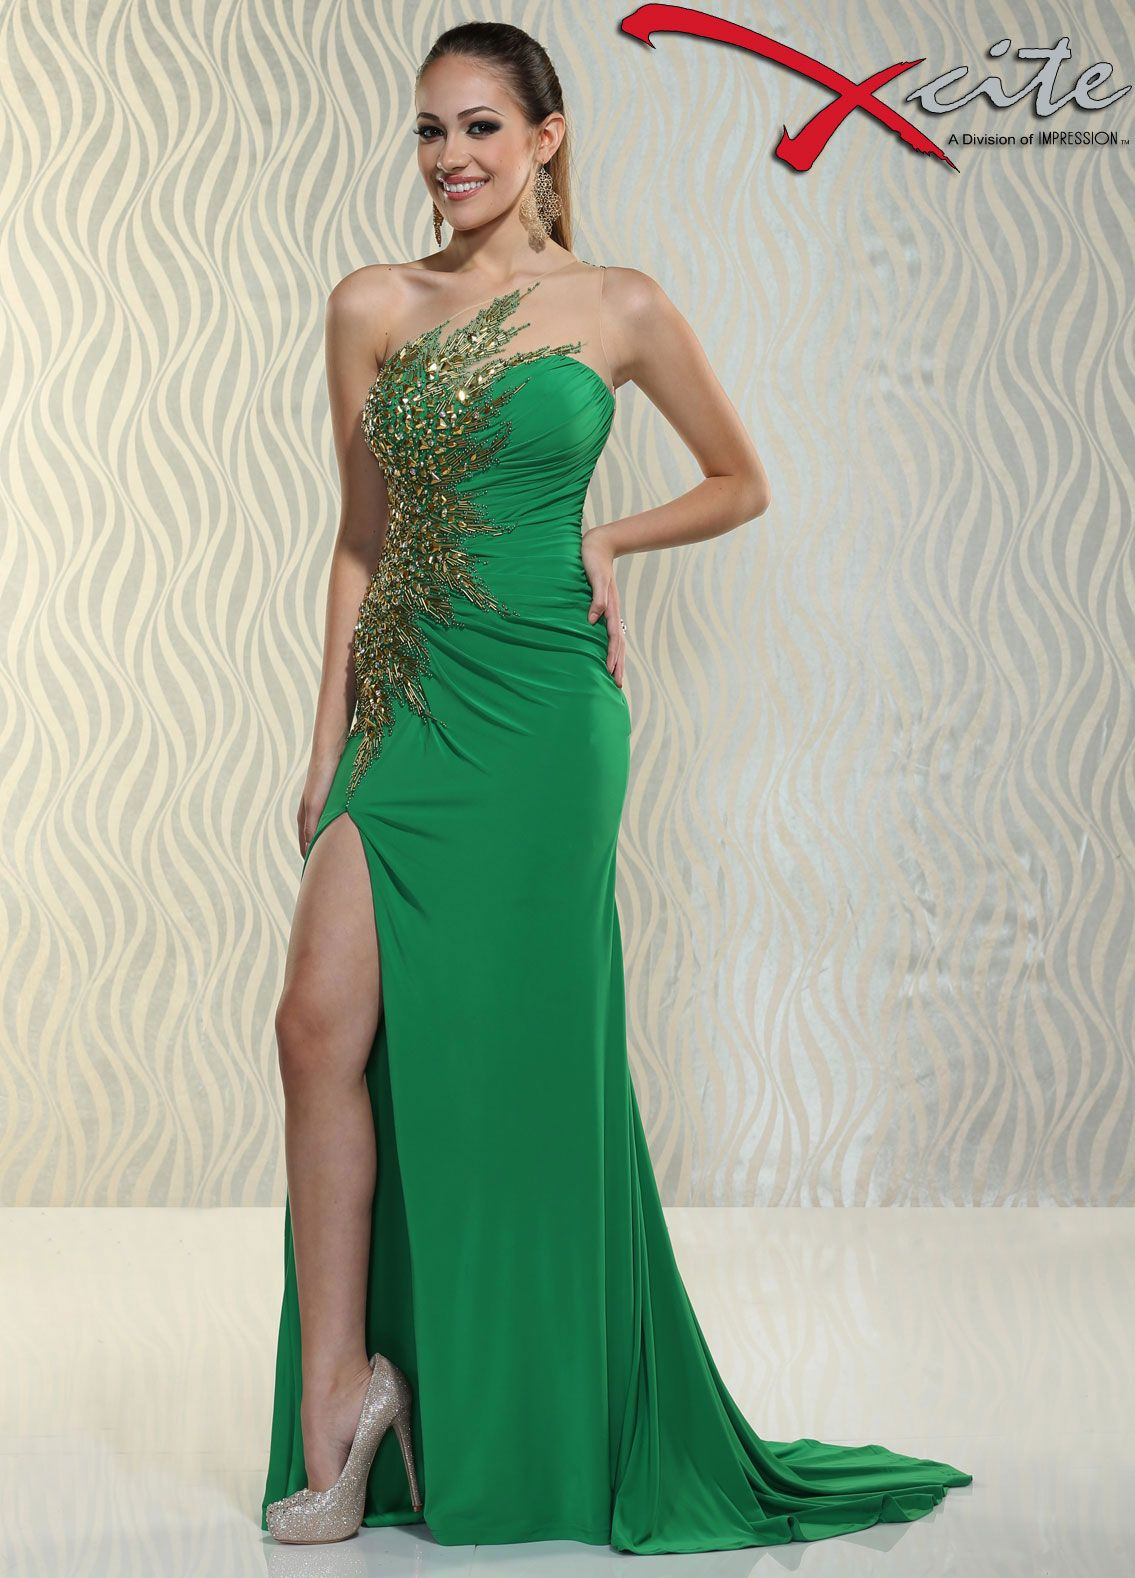 Xcite prom dress pageant dress formal gown evening gown fashion